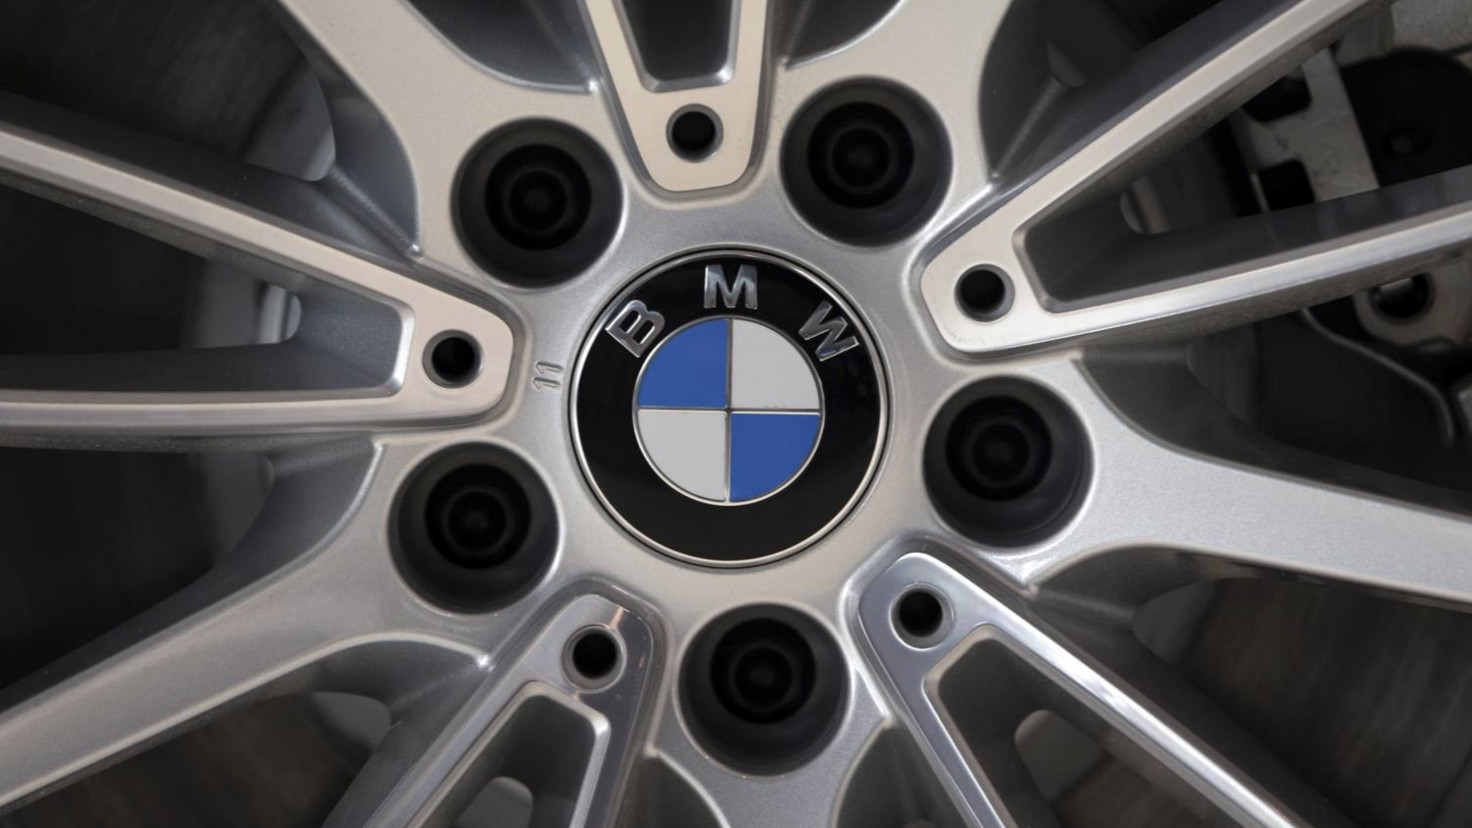 BMW bucks industry trend and goes for old-style luxury